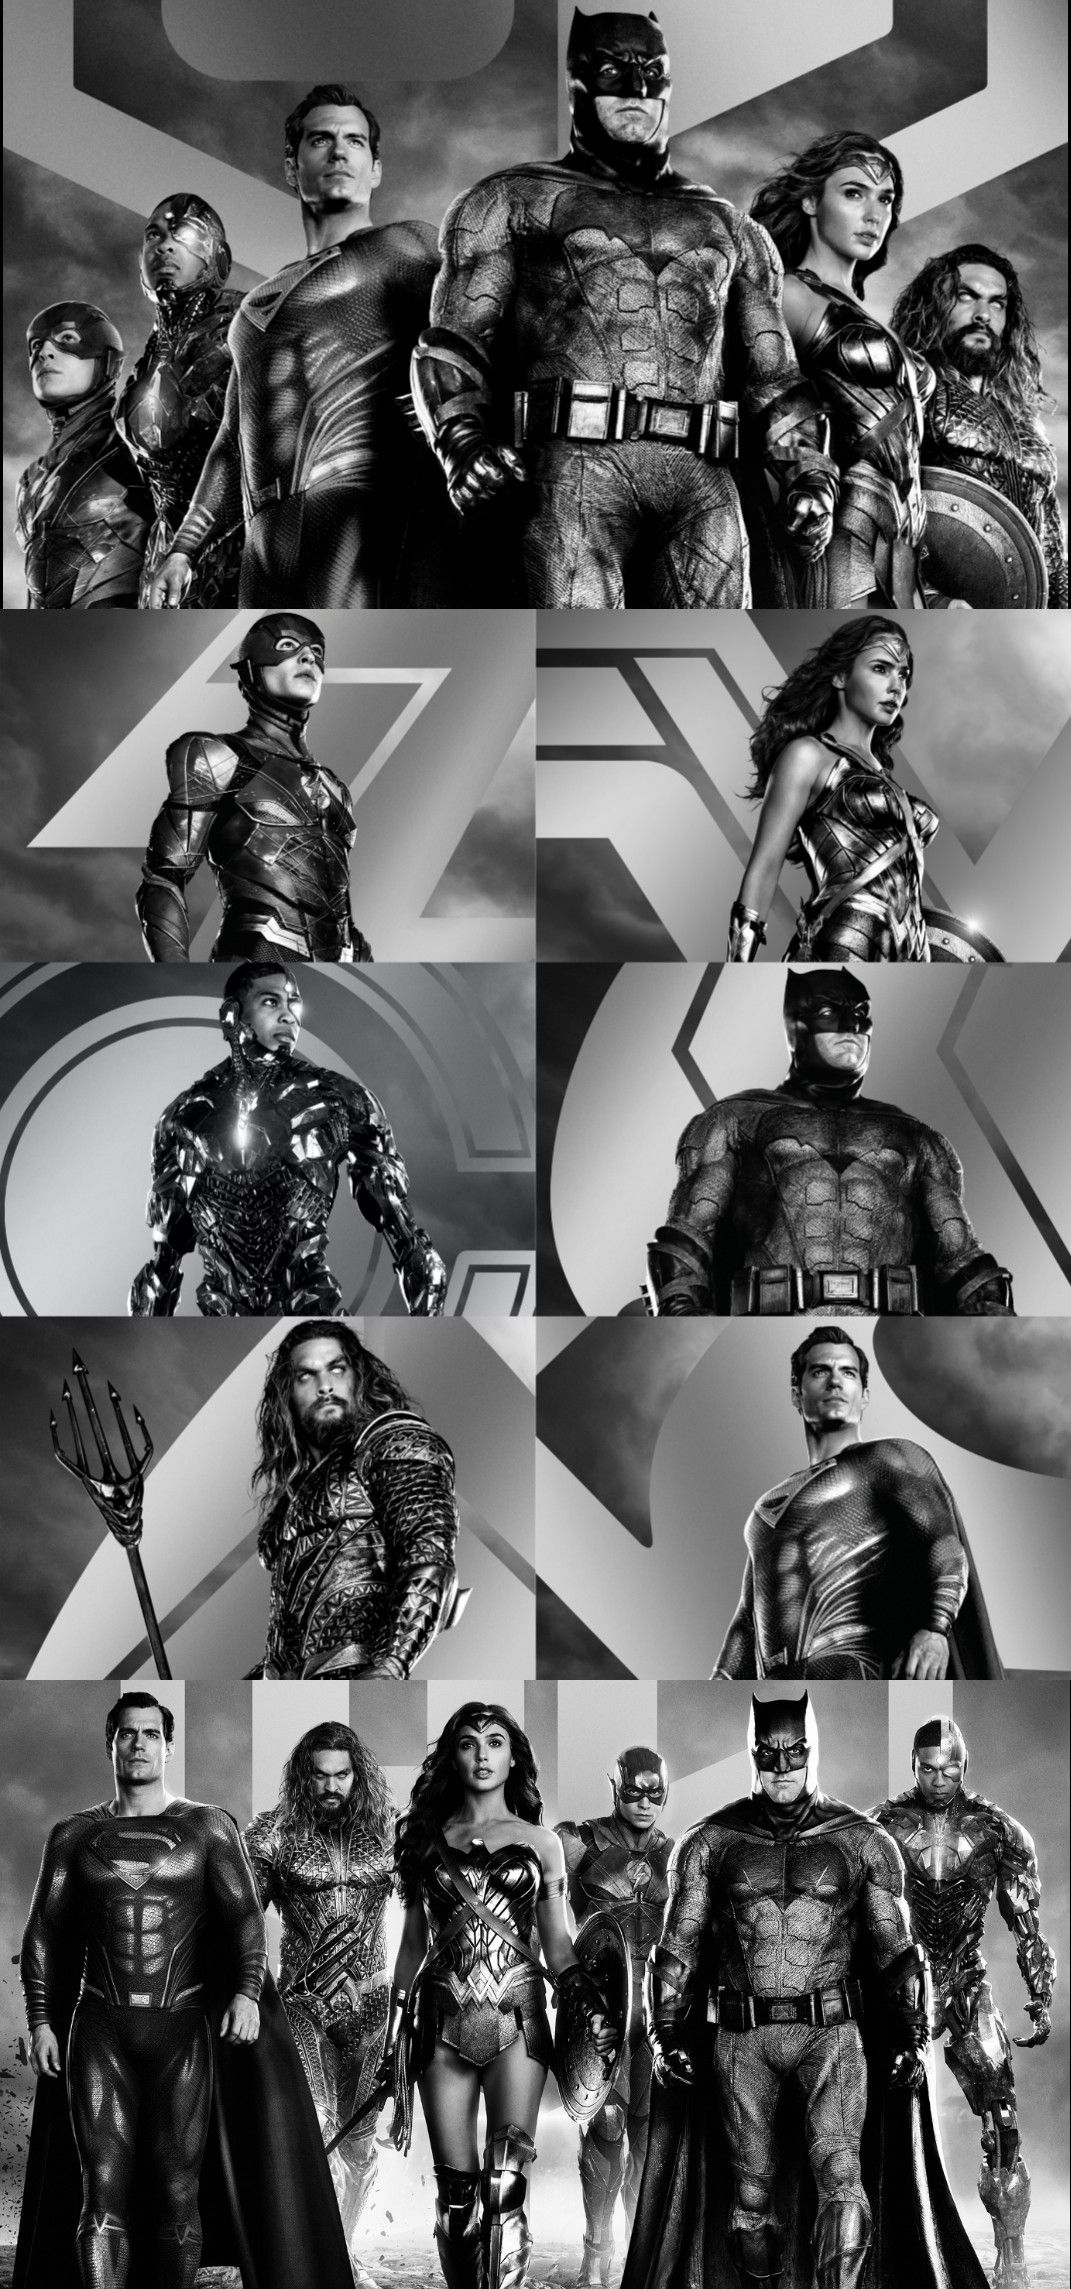 Zack Snyder S Justice League In 2021 Justice League Comics Justice League Justice League Of America